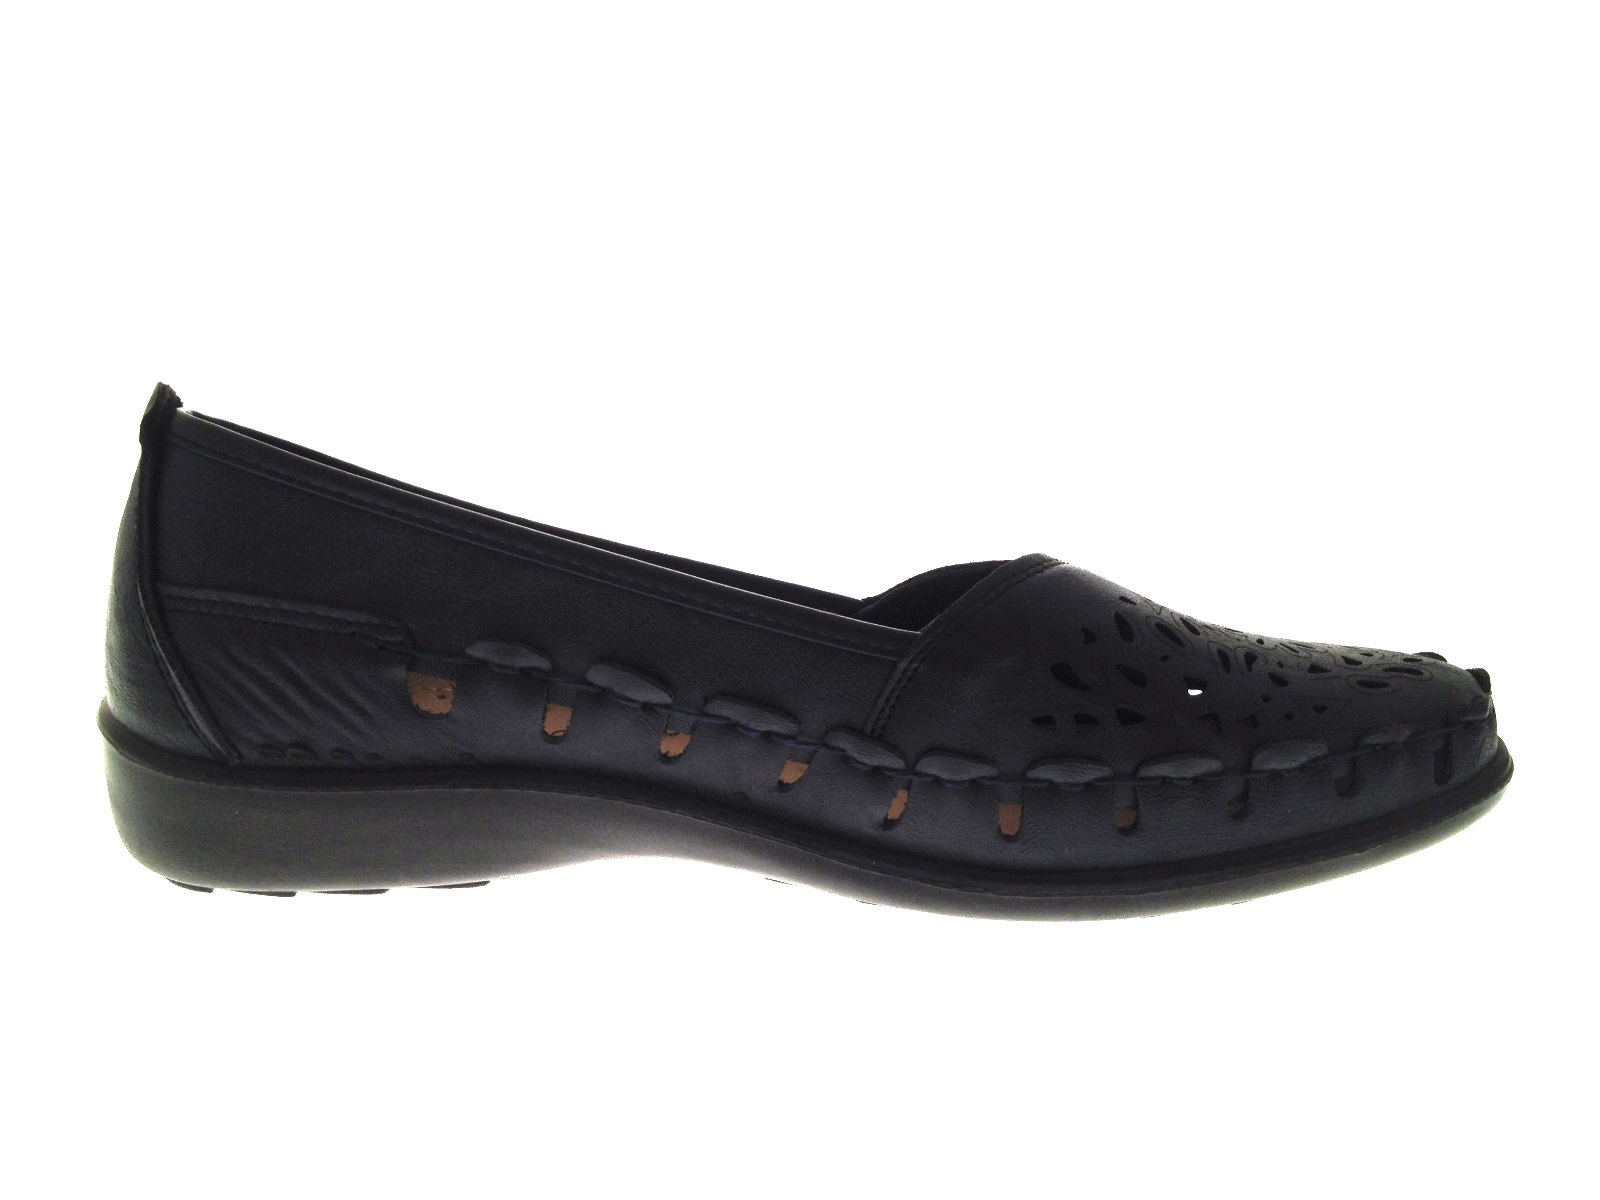 Womens Faux Leather Comfort Loafers Cut Out Shoes Casual Summer Flats Size 3-8